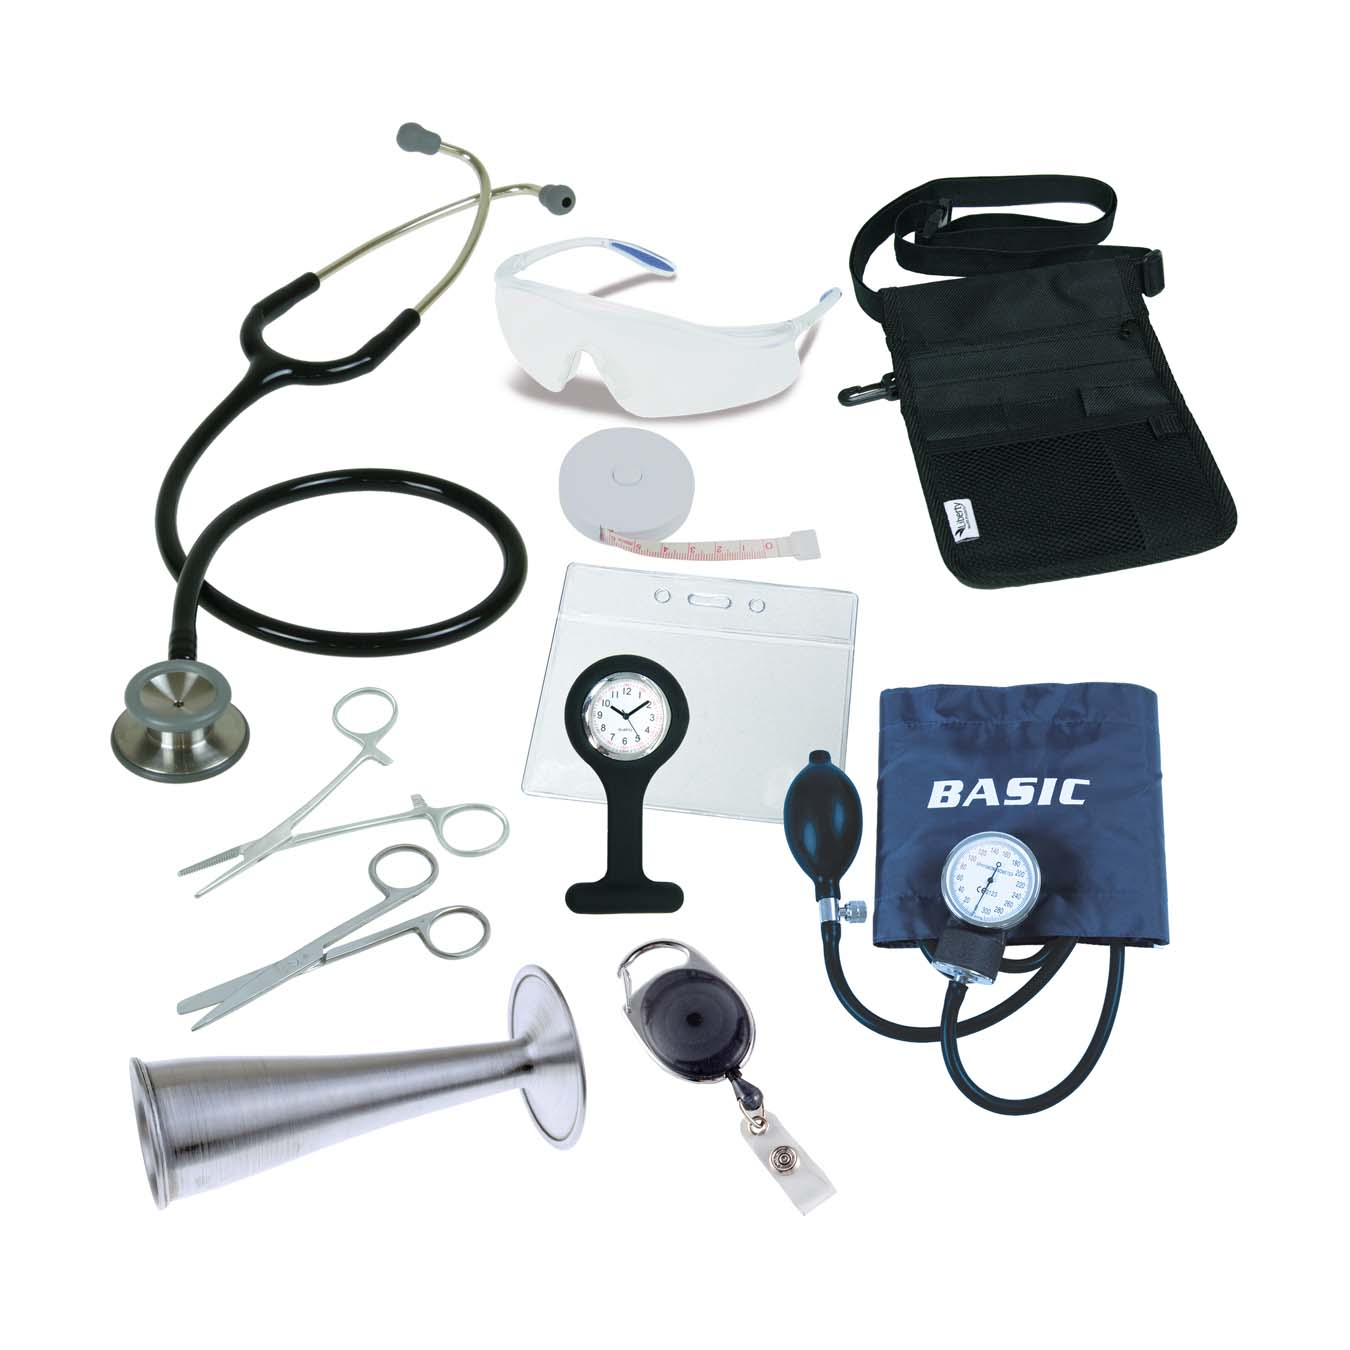 NKMIDACUBK1_1_Midwifery-Nurses-Kit-Black